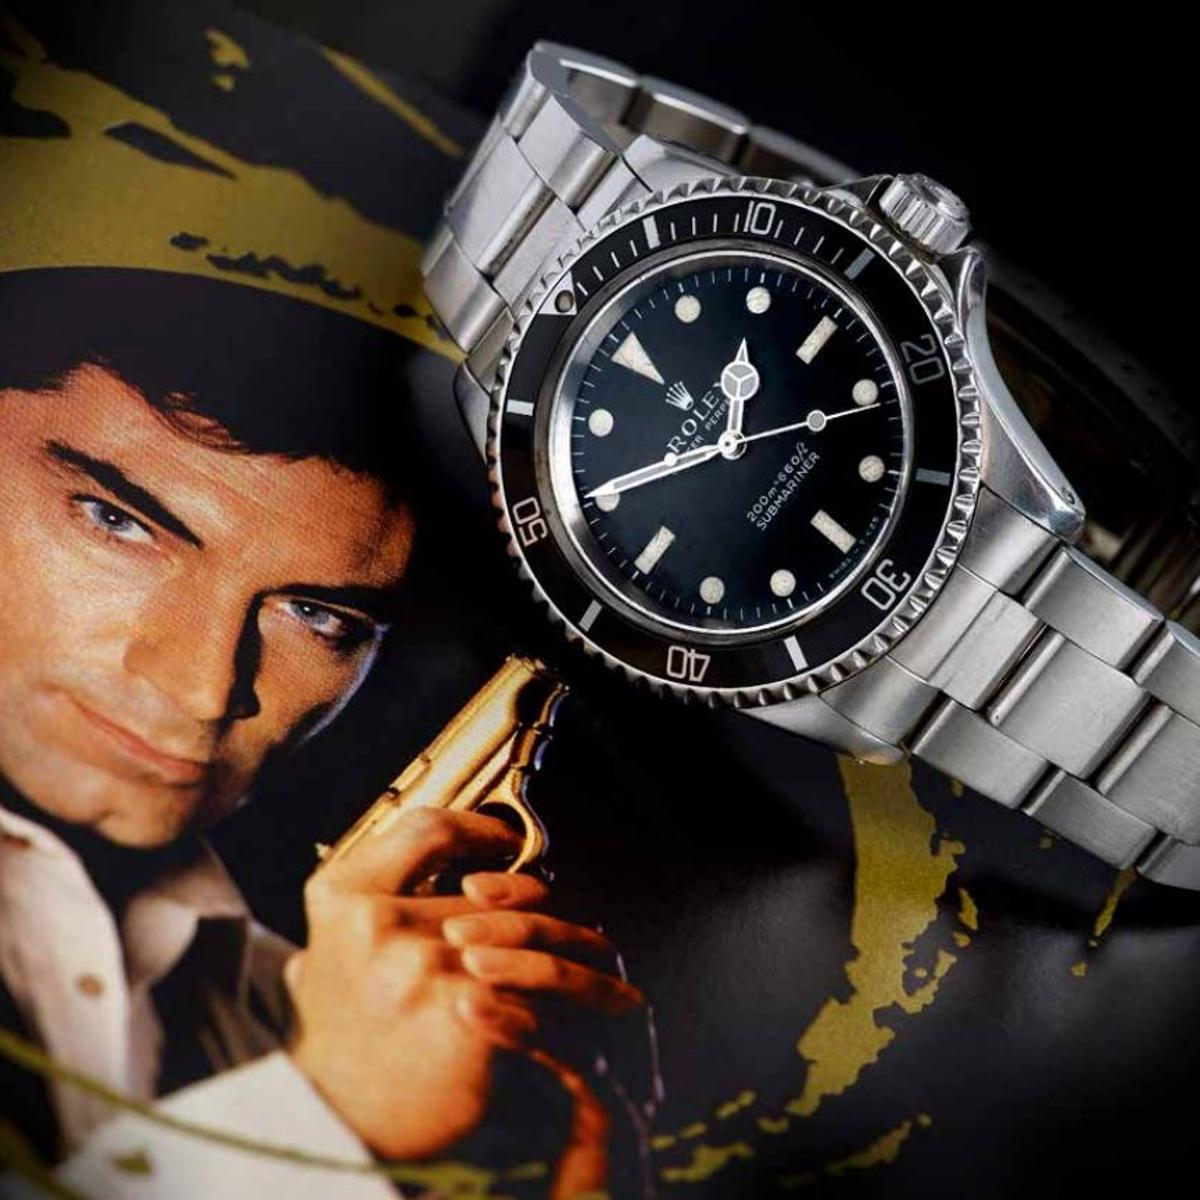 The watch was worn by Timothy Dalton's stunt double during the filming of Licence to Kill